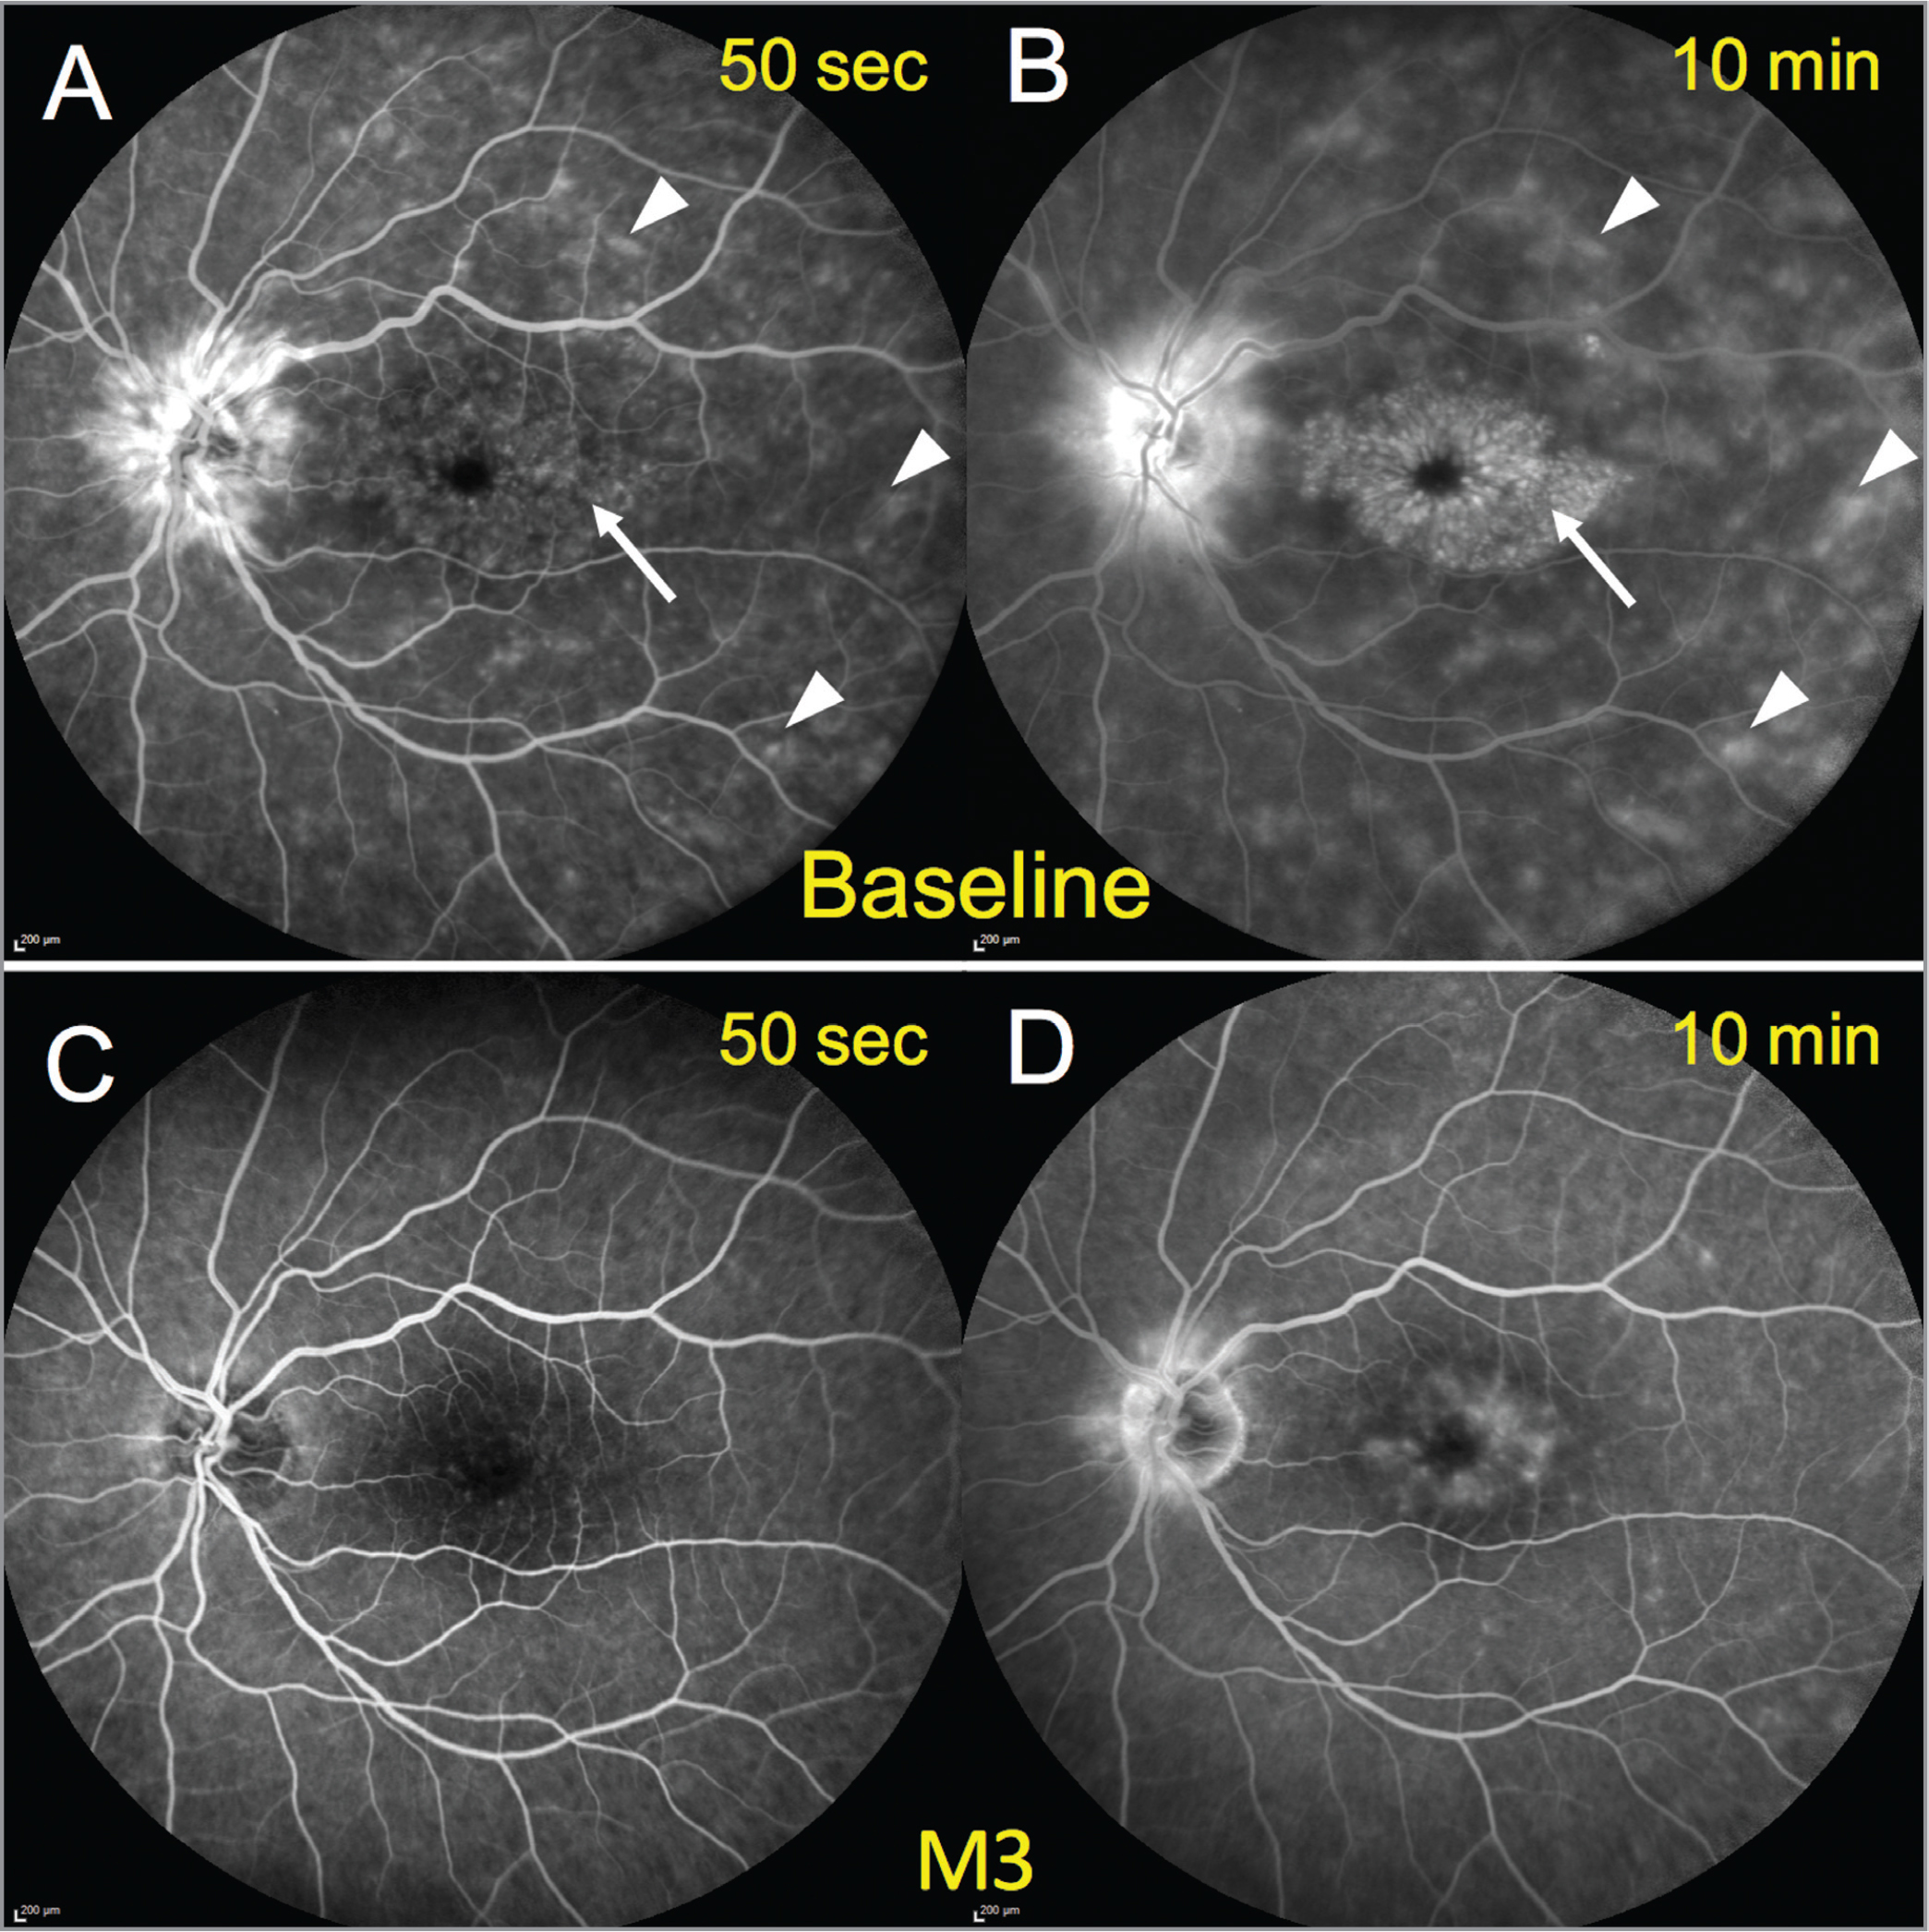 Restoration of the outer and inner blood-retinal barrier on fluorescein angiography in a 76-year-old woman treated by oral eplerenone and topical dexamethasone drops 2 years after complicated cataract extraction. (A, B) At presentation, extensive outer blood-retinal barrier rupture manifested as diffuse hyperfluorescent spots (arrowheads), and inner blood-retinal barrier rupture at the macular manifested as fine telangiectasia in the early frames (A) and progressive filling of the cystoid cavities in the late frame (B) (arrows). An intense late diffusion at the disc indicated papillitis (B), a frequent finding in Irvine-Gass syndrome. (C, D) Three months after treatment initiation, all inflammatory signs had markedly declined, with fewer hyperfluorescent spots, a weaker diffusion at the macula, and a milder fluorescence at the disc still visible on the late frame (D). M = month.